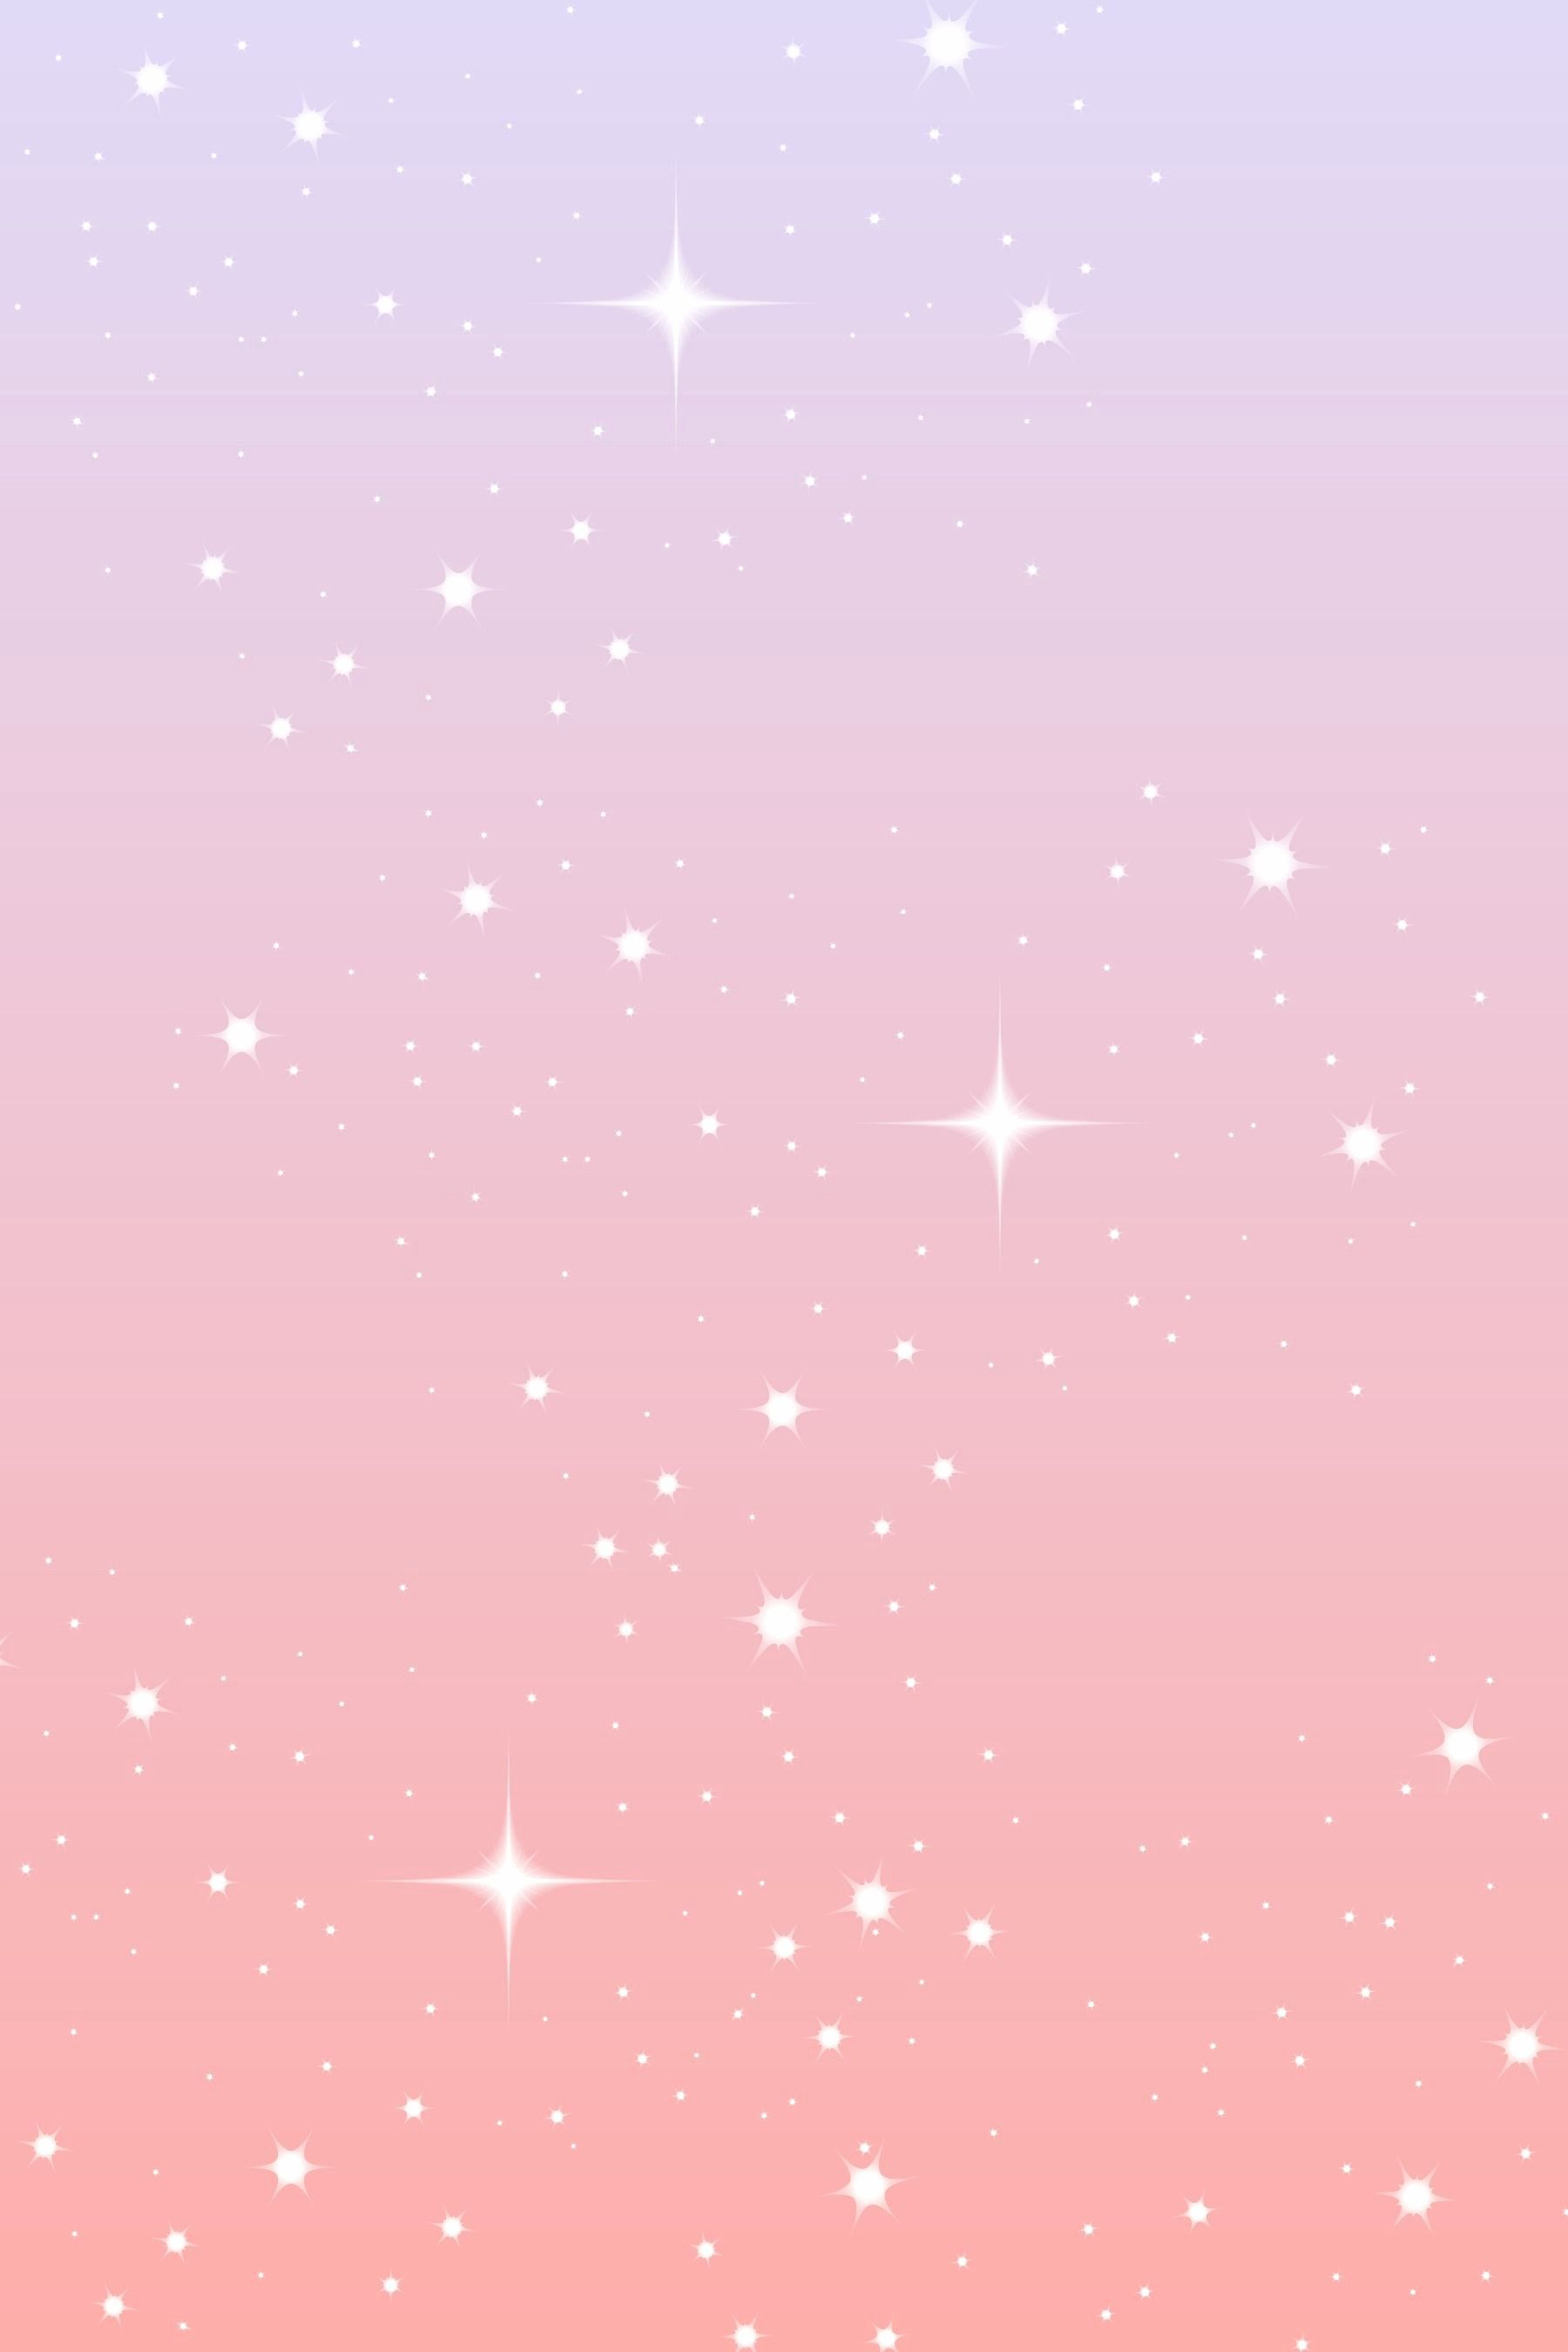 Res 1800x2700 Pink Vs Wallpaper For Mobile Fresh Phone Wallpaper With Purple And Pink Ombre Pink Ombre Wallpaper Ombre Wallpapers Pink Wallpaper Backgrounds Tons of awesome pink aesthetic wallpapers to download for free. pink wallpaper backgrounds